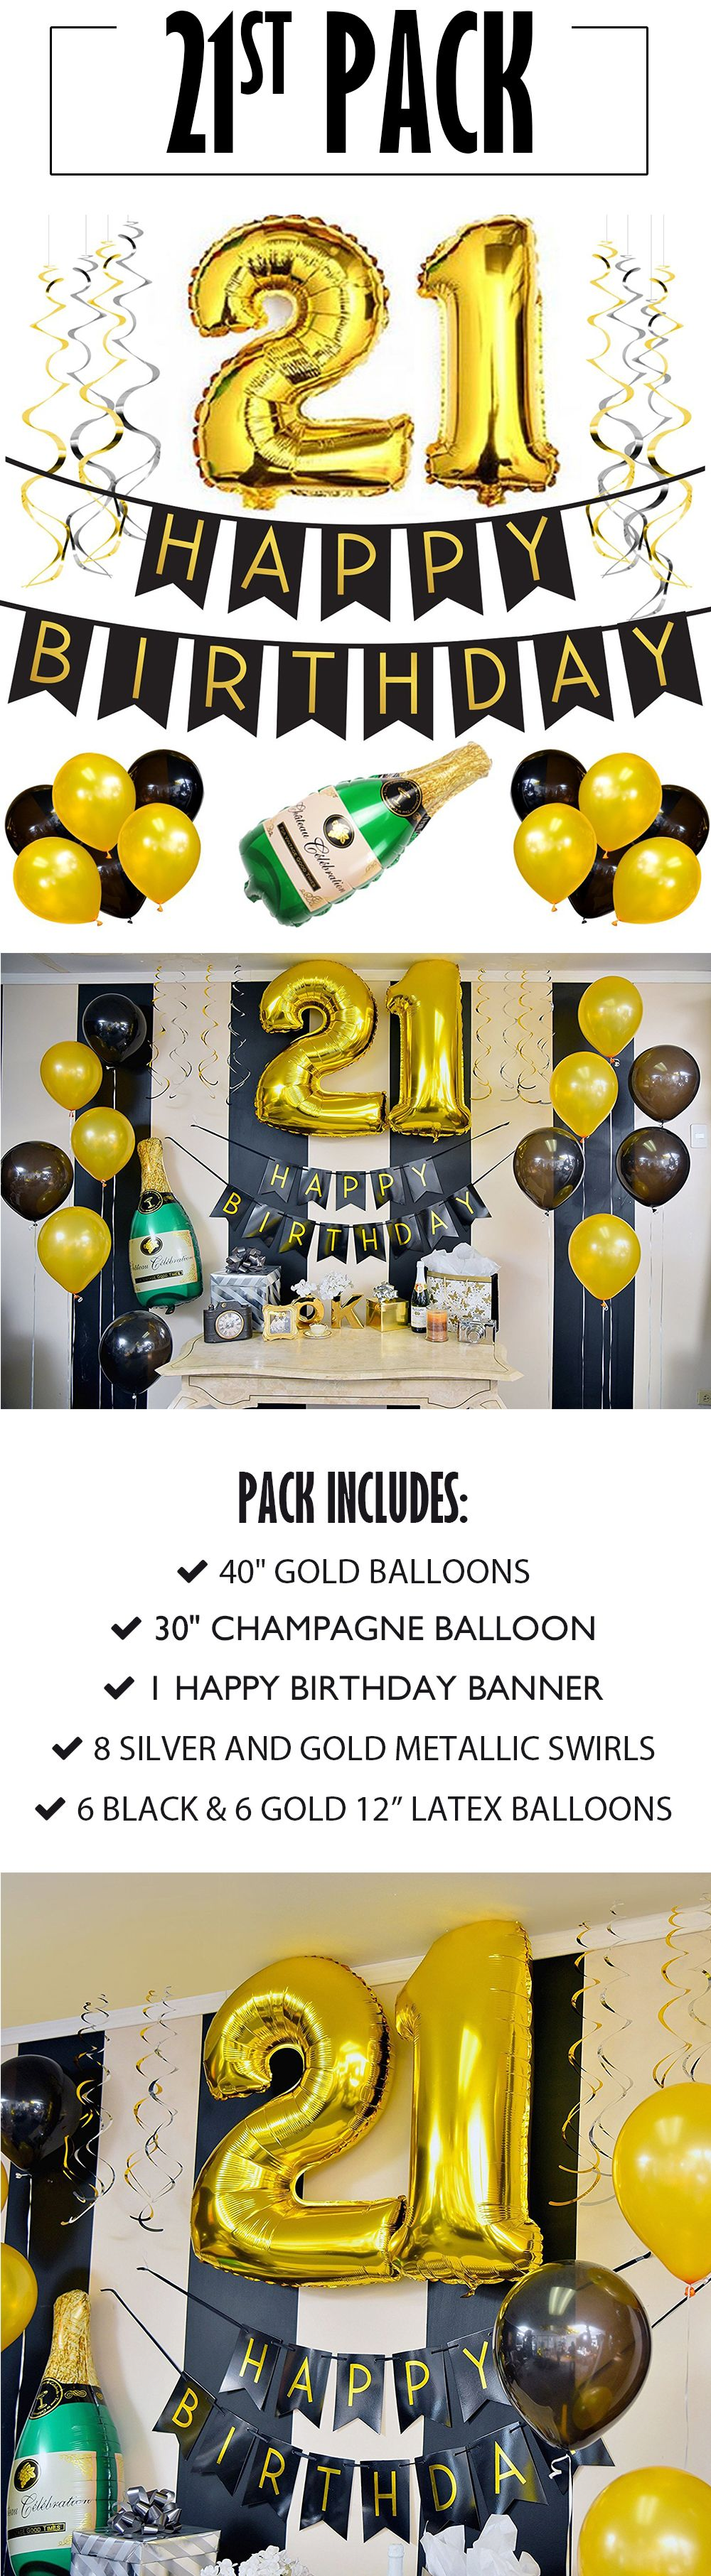 21st Birthday Banner And Balloon Pack